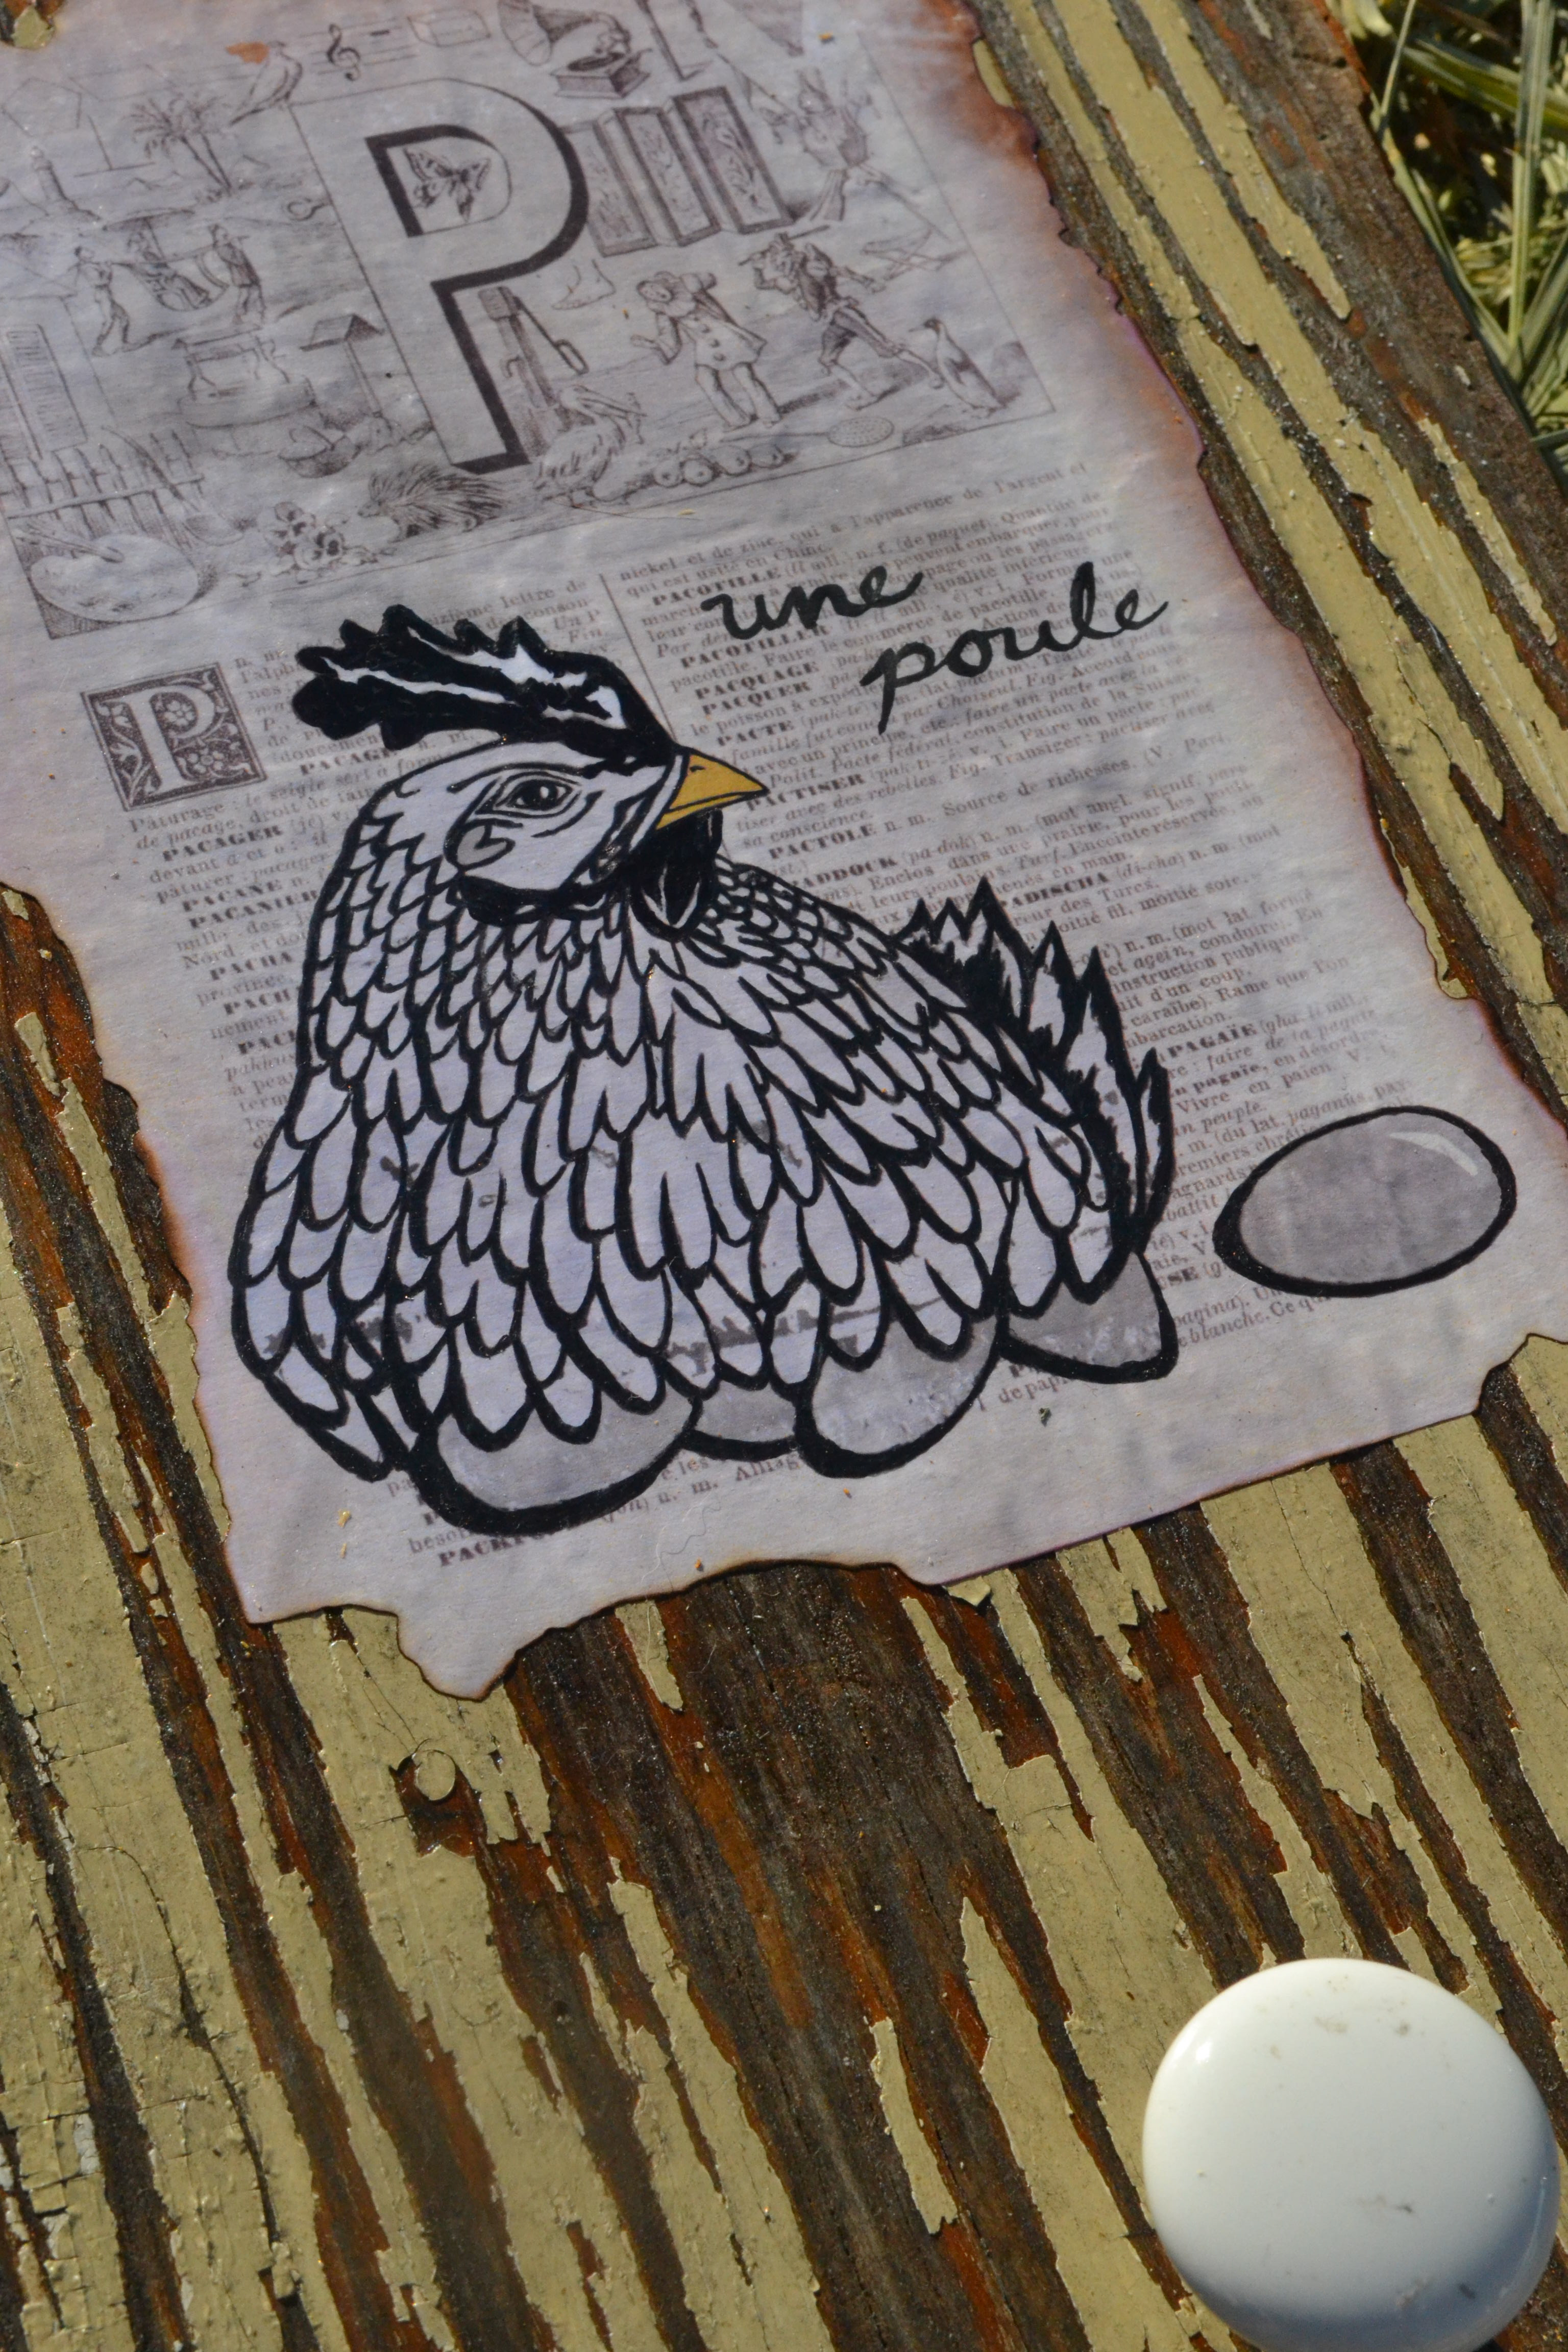 P is for Poule hanger